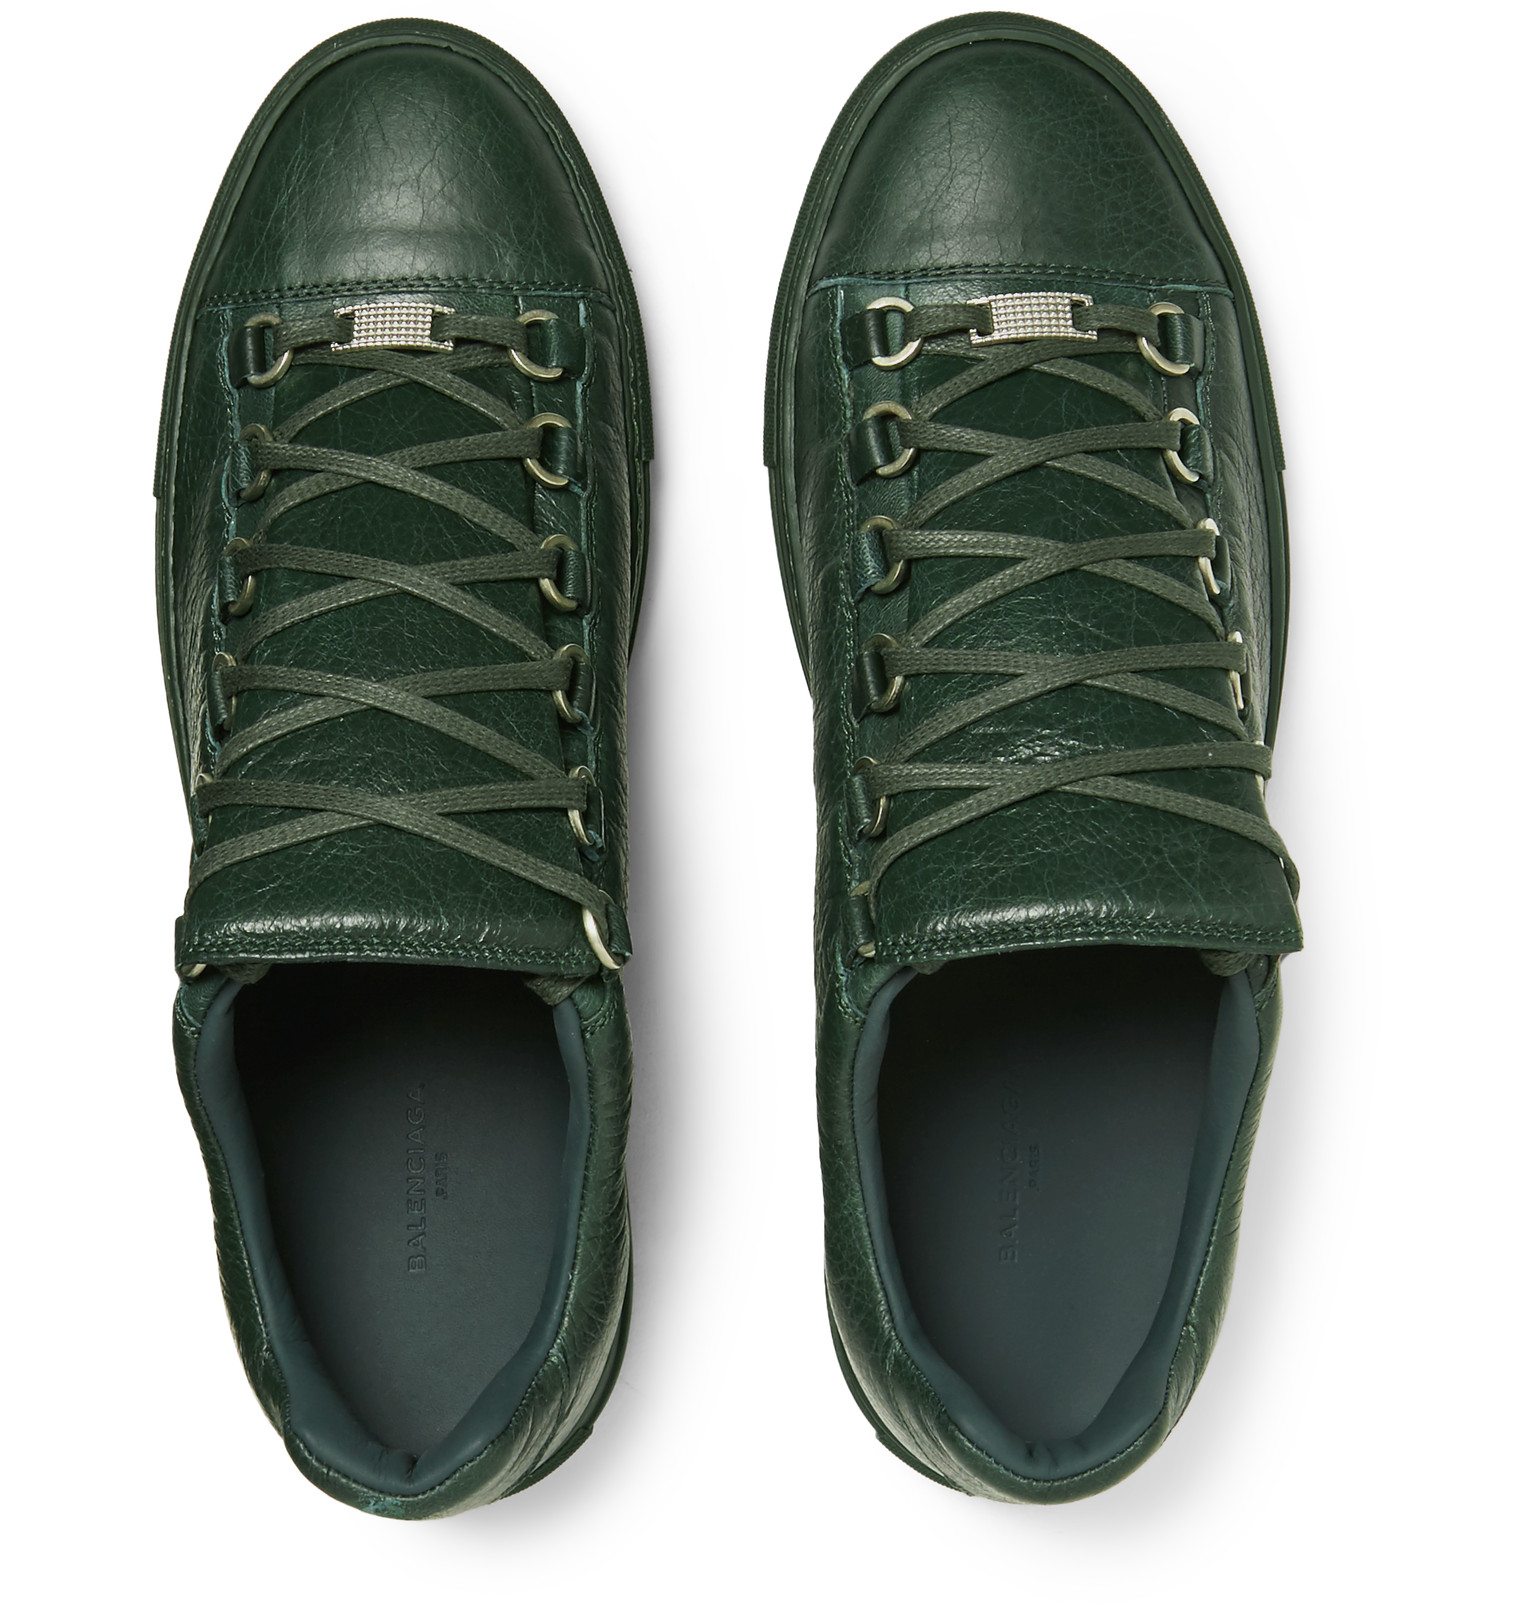 16588cf703ff Lyst - Balenciaga Arena Creased-leather High-top Sneakers in Green for Men